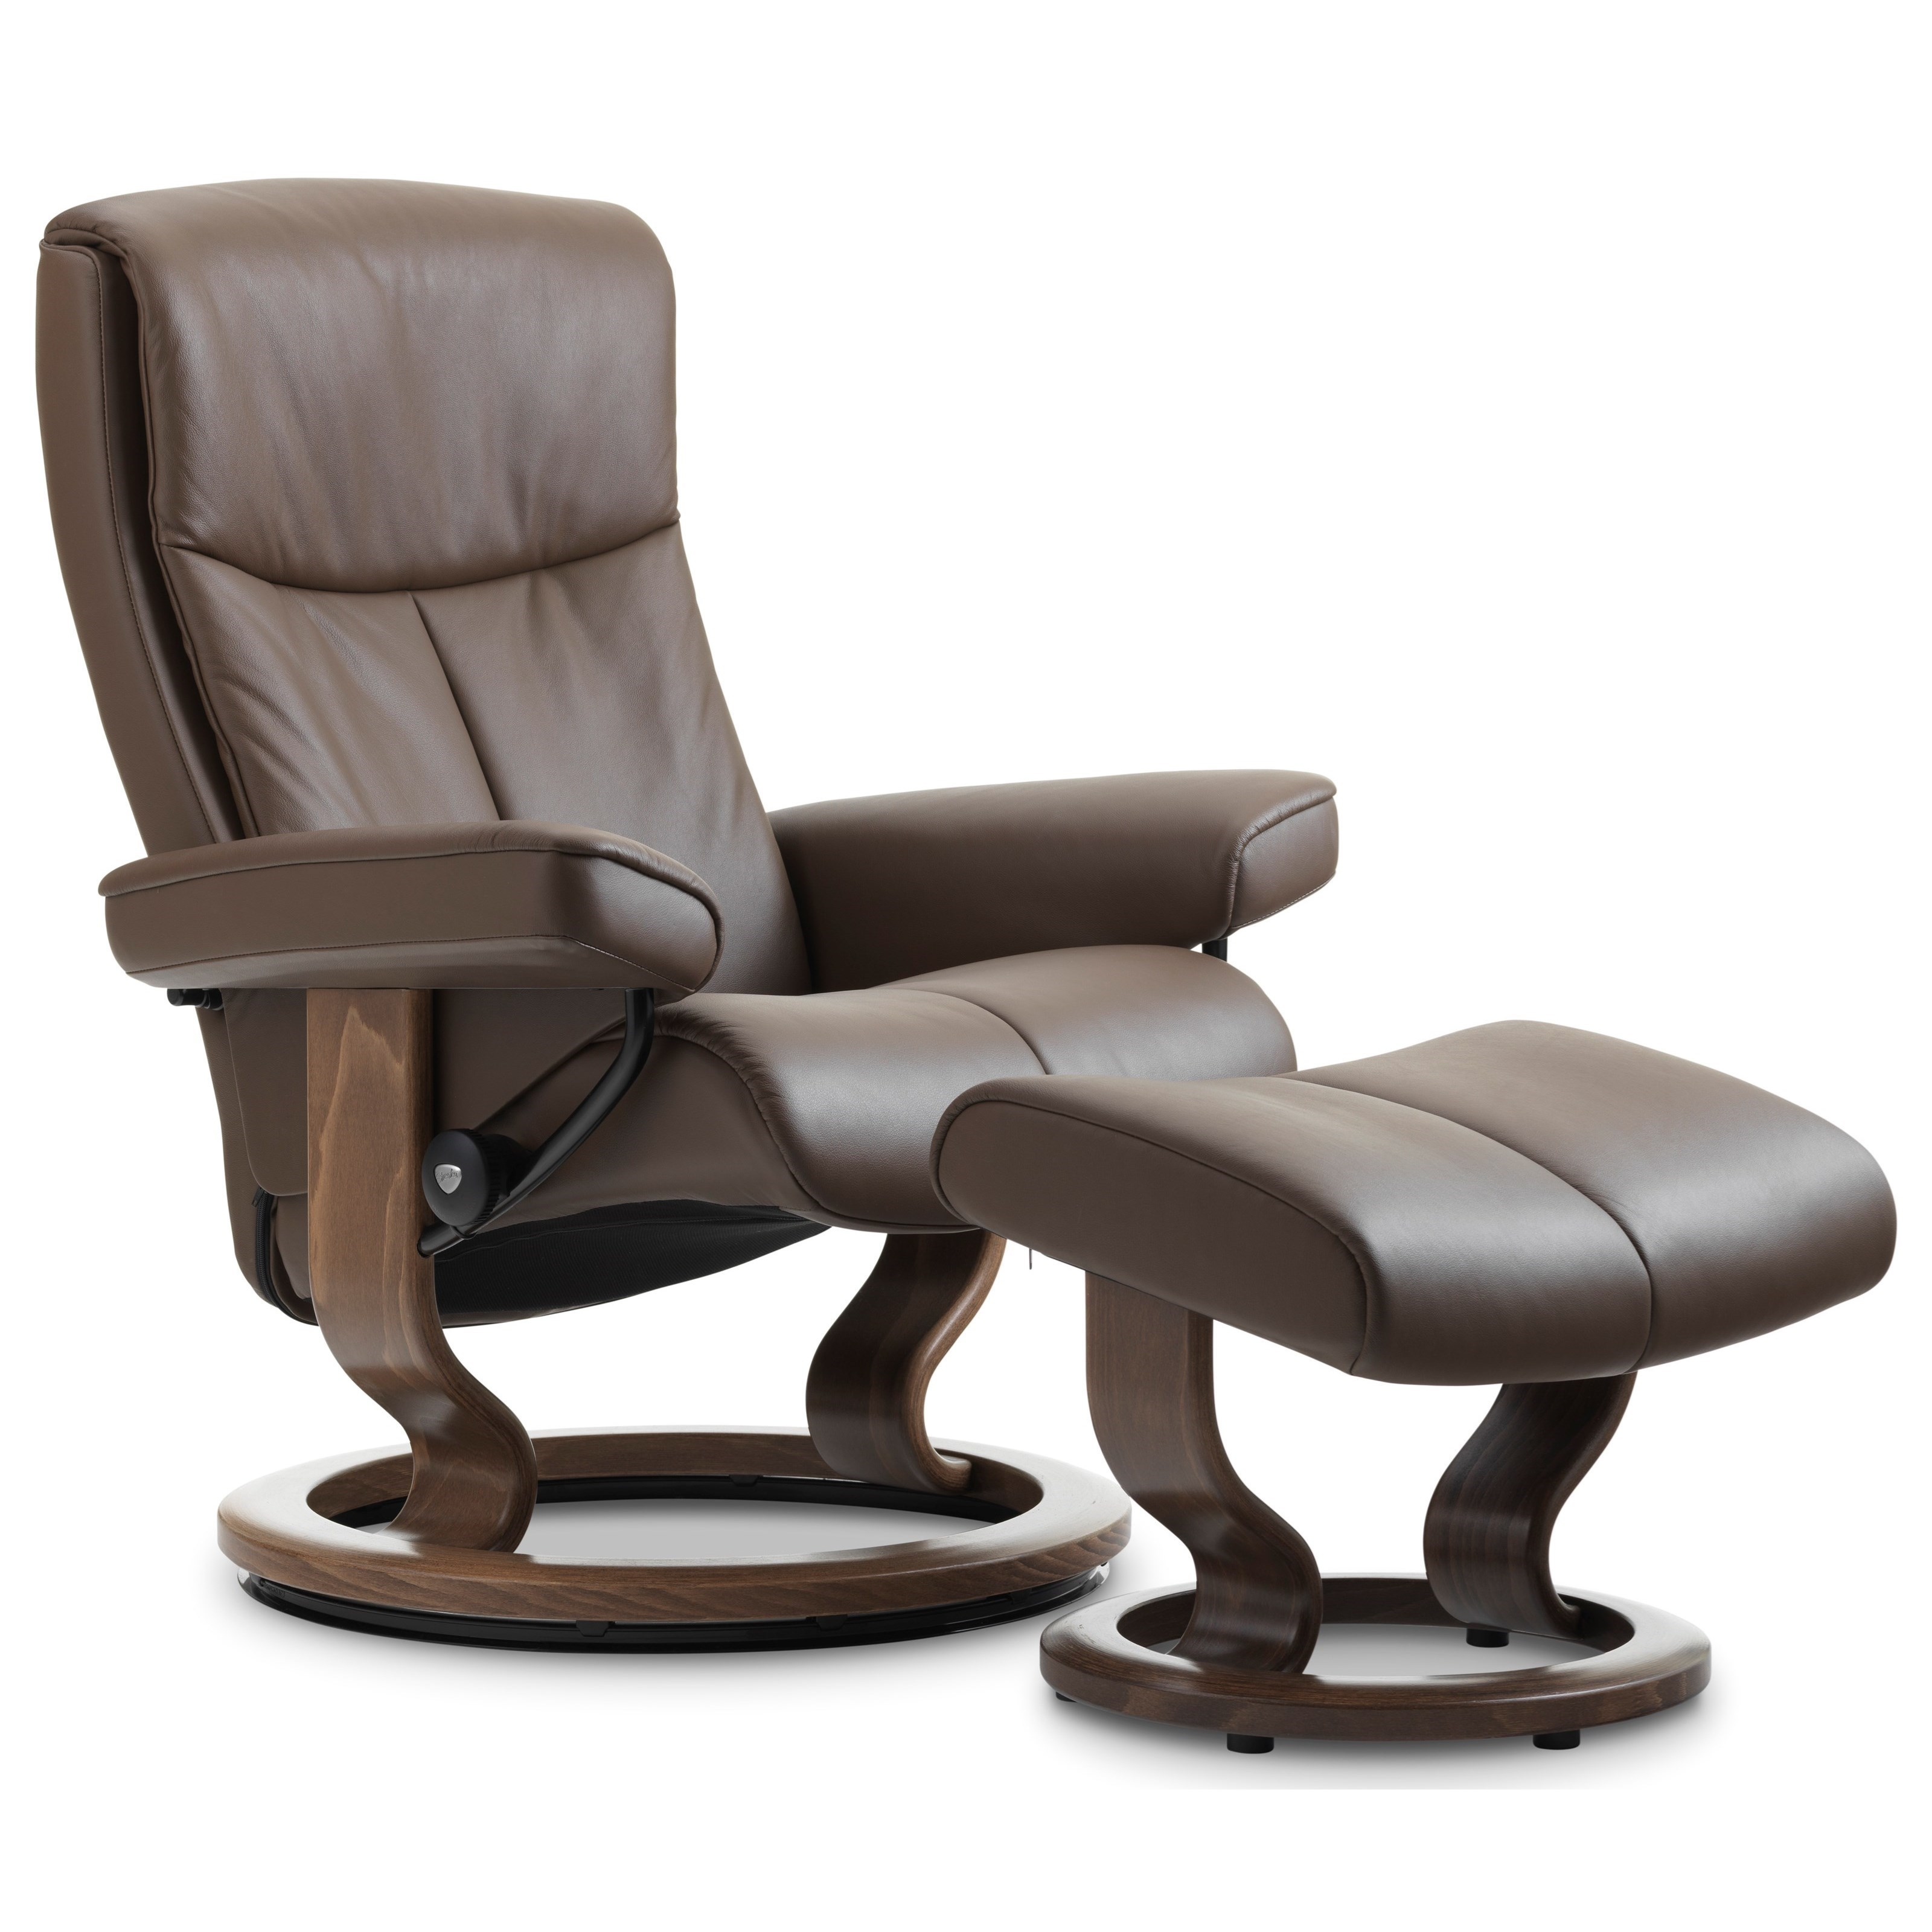 Classic Chair Peace Medium Reclining Chair Ottoman With Classic Base By Stressless At Hudson S Furniture